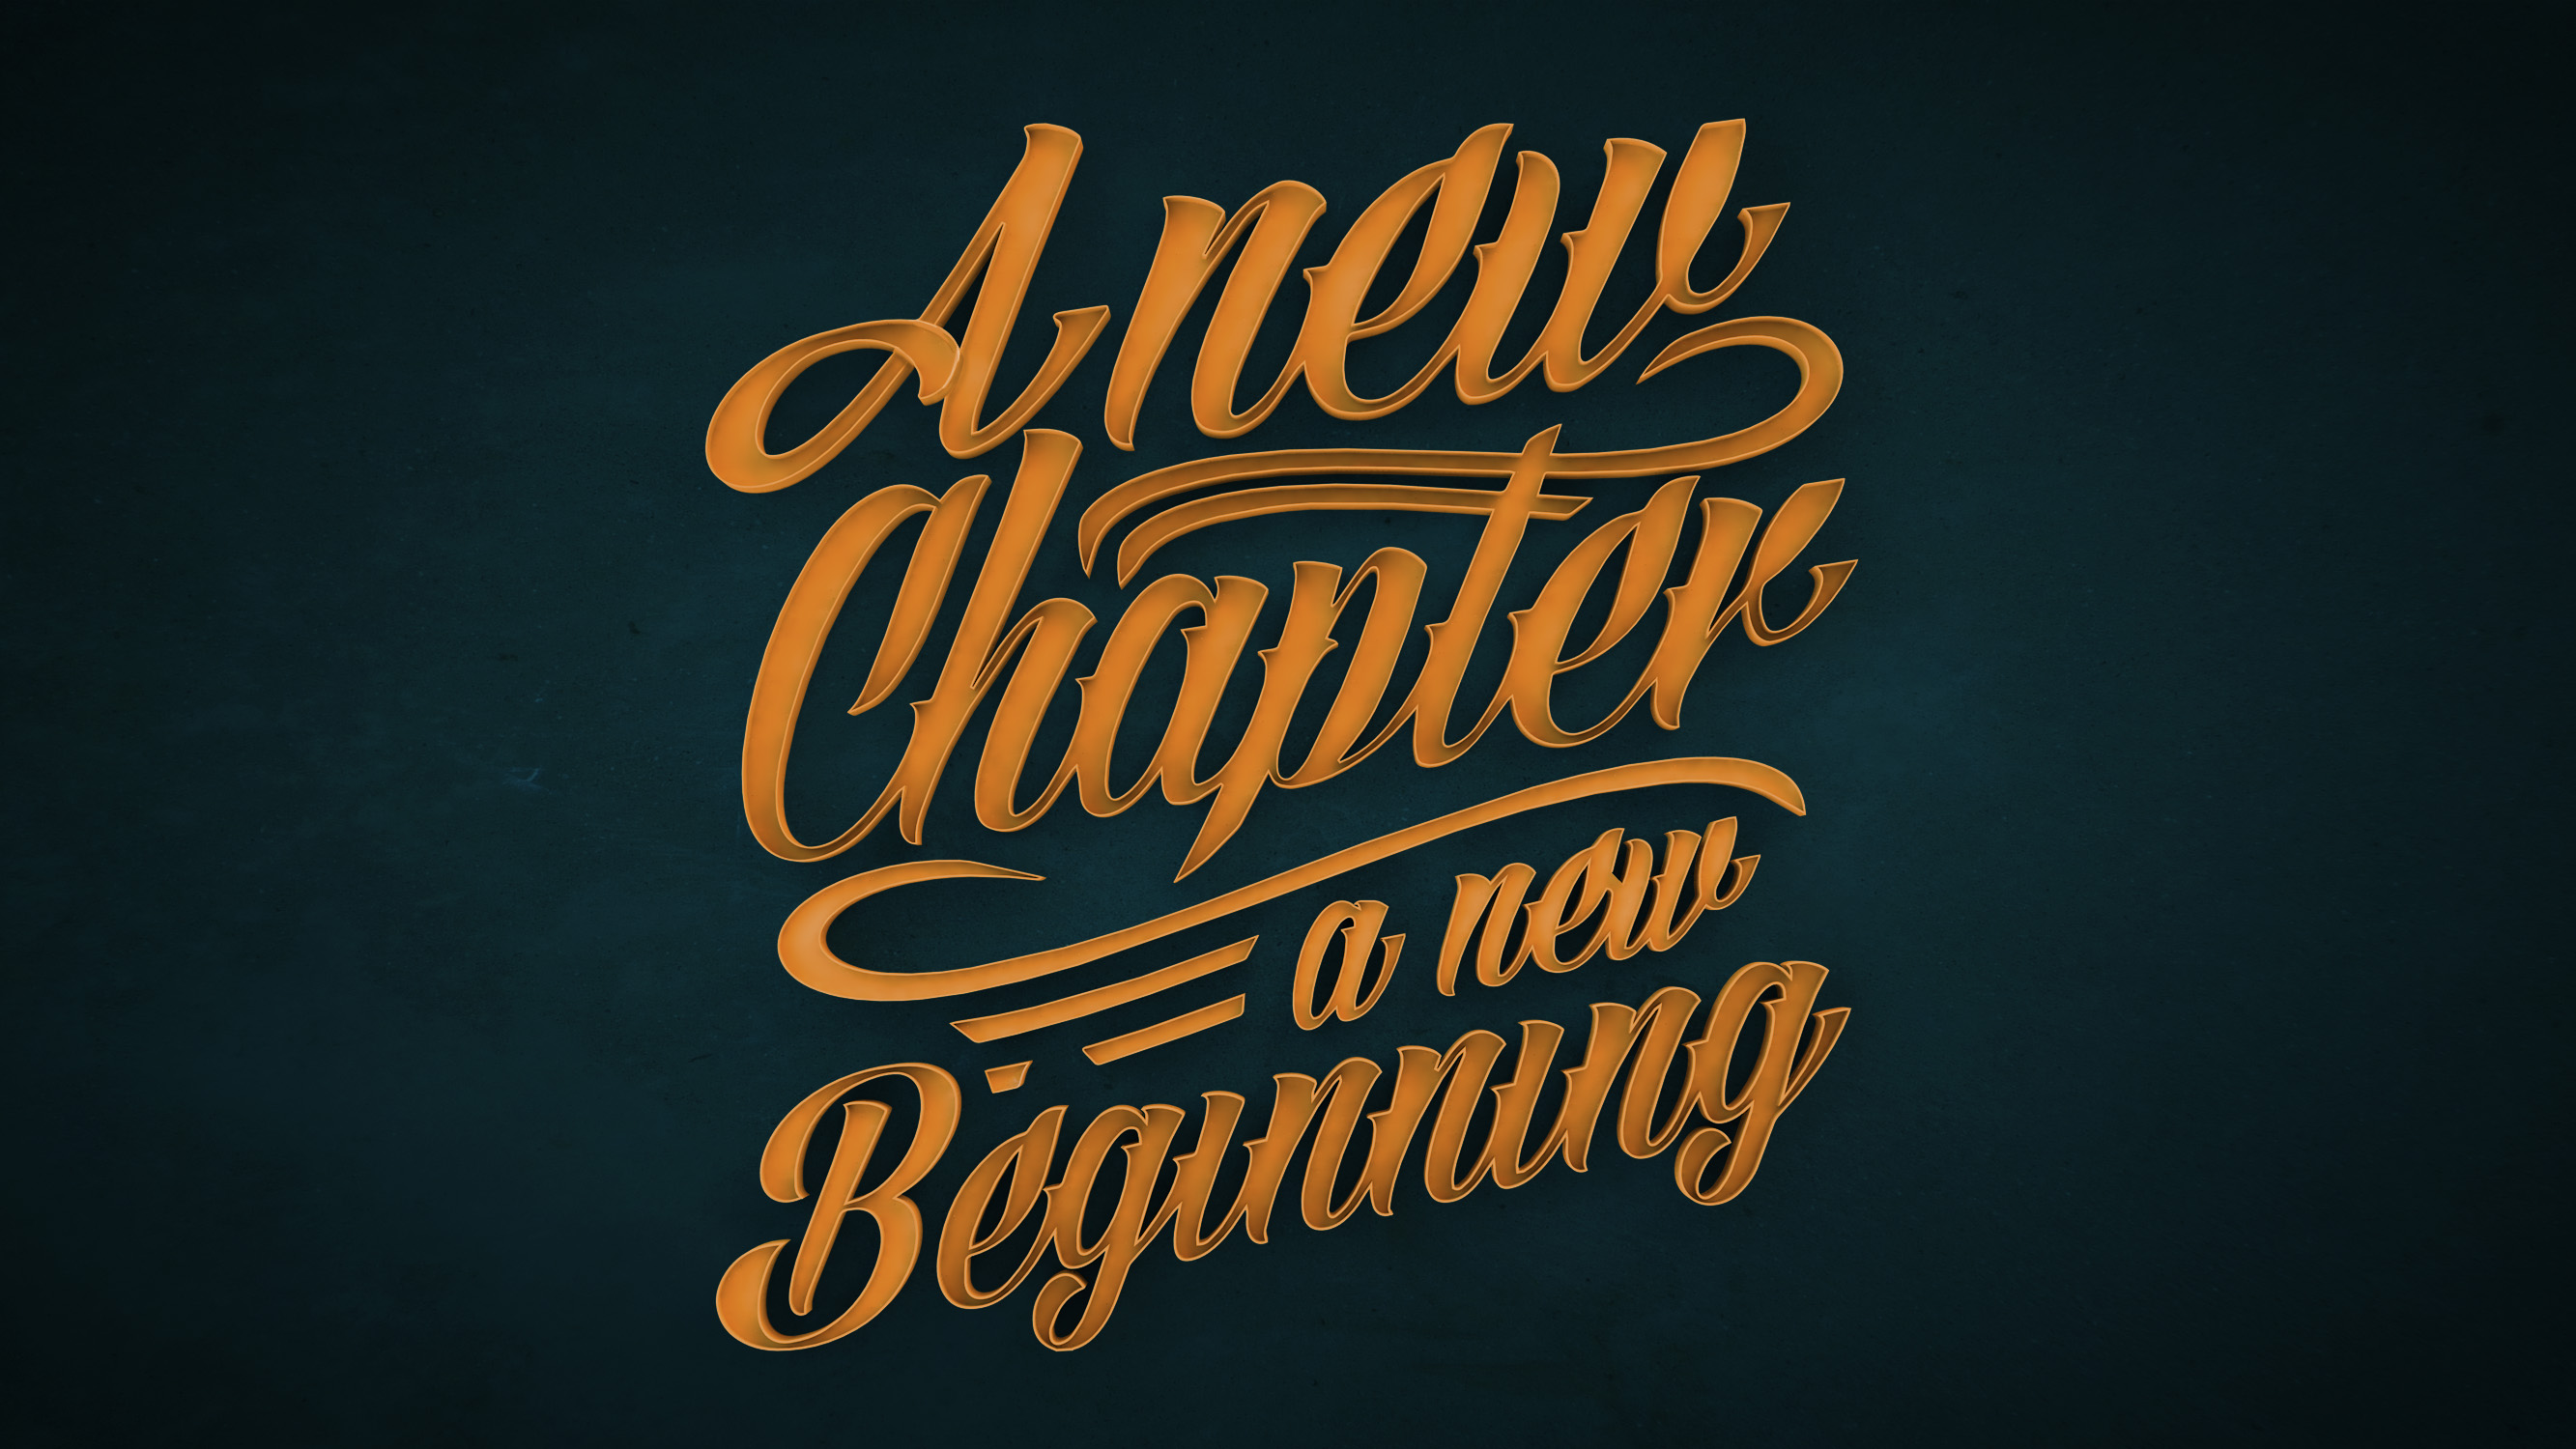 A_New_Chapter